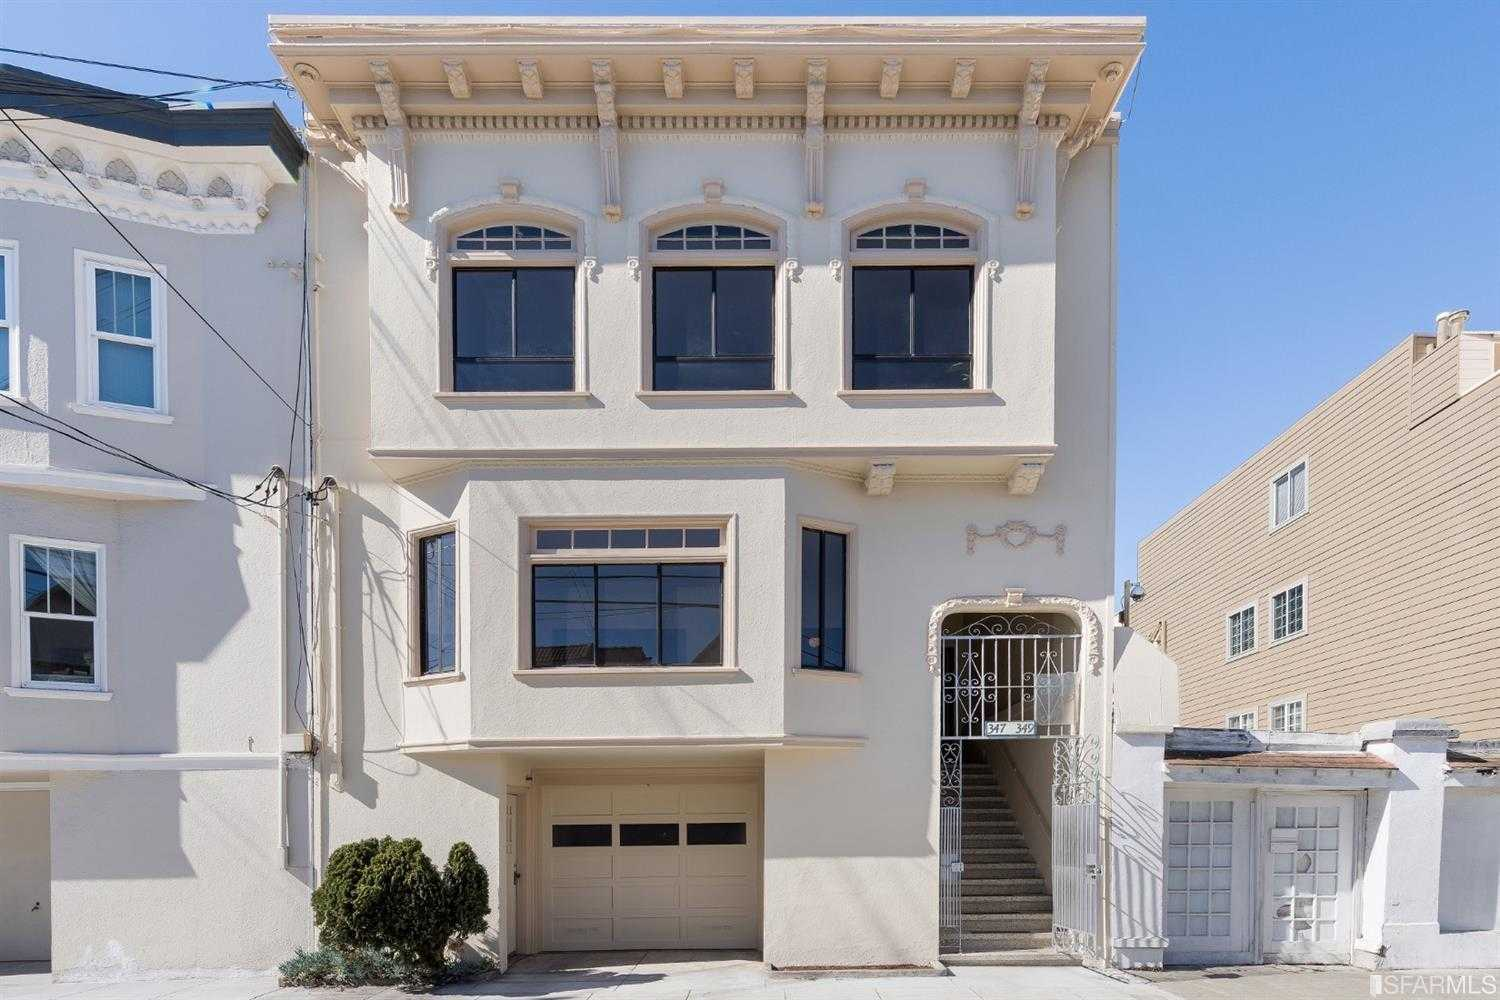 347 349 28th Avenue San Francisco, CA 94121